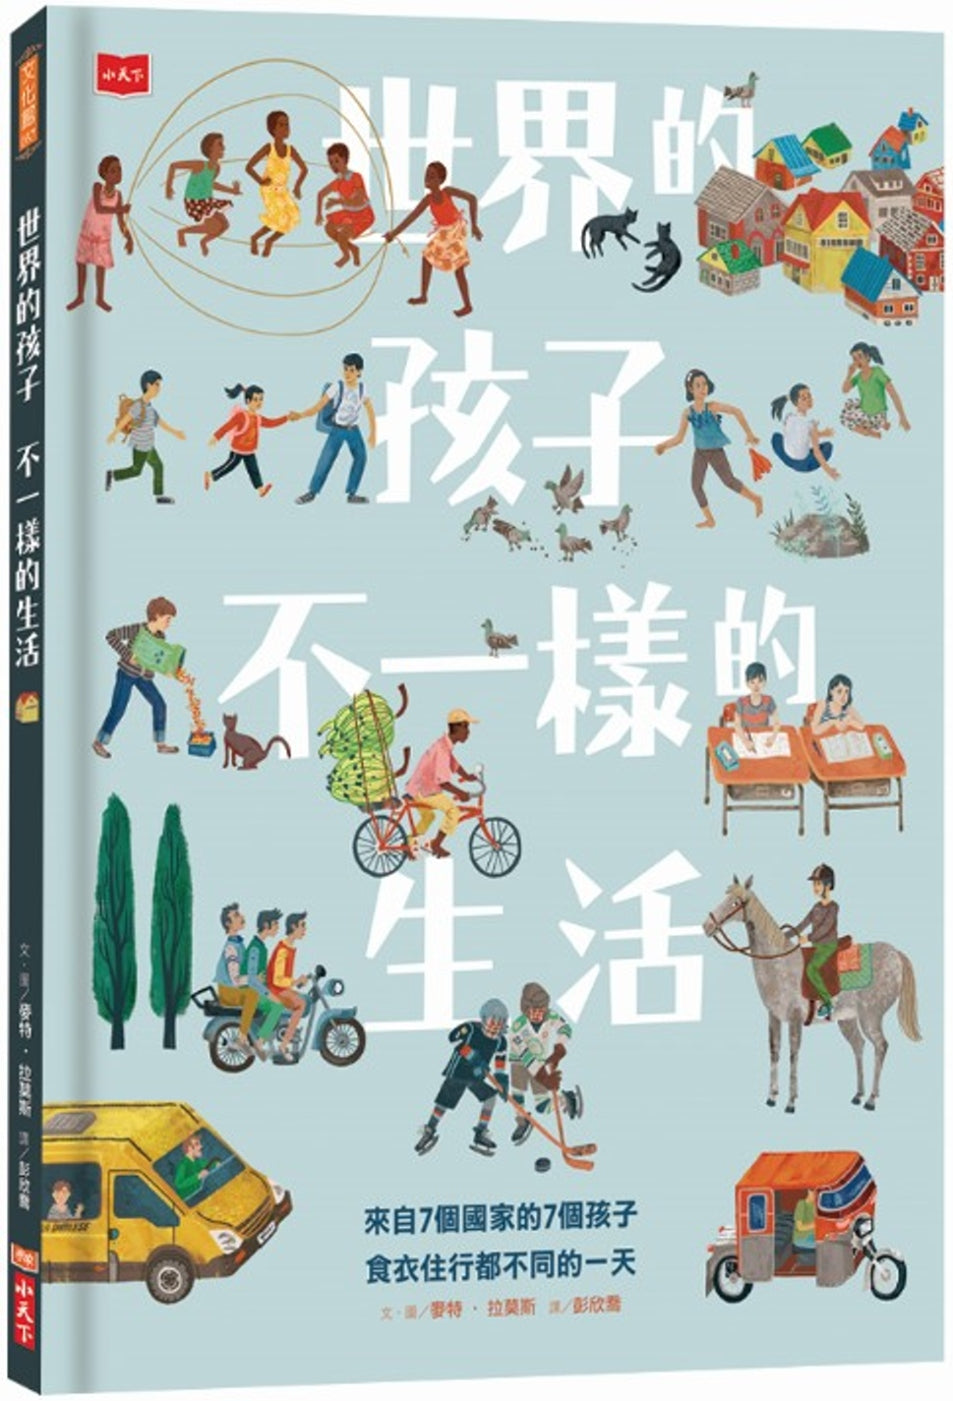 This Is How We Do It: One Day in the Lives of Seven Kids from around the World • 世界的孩子,不一樣的生活:來自7個國家的7個孩子,食衣住行都不同的一天